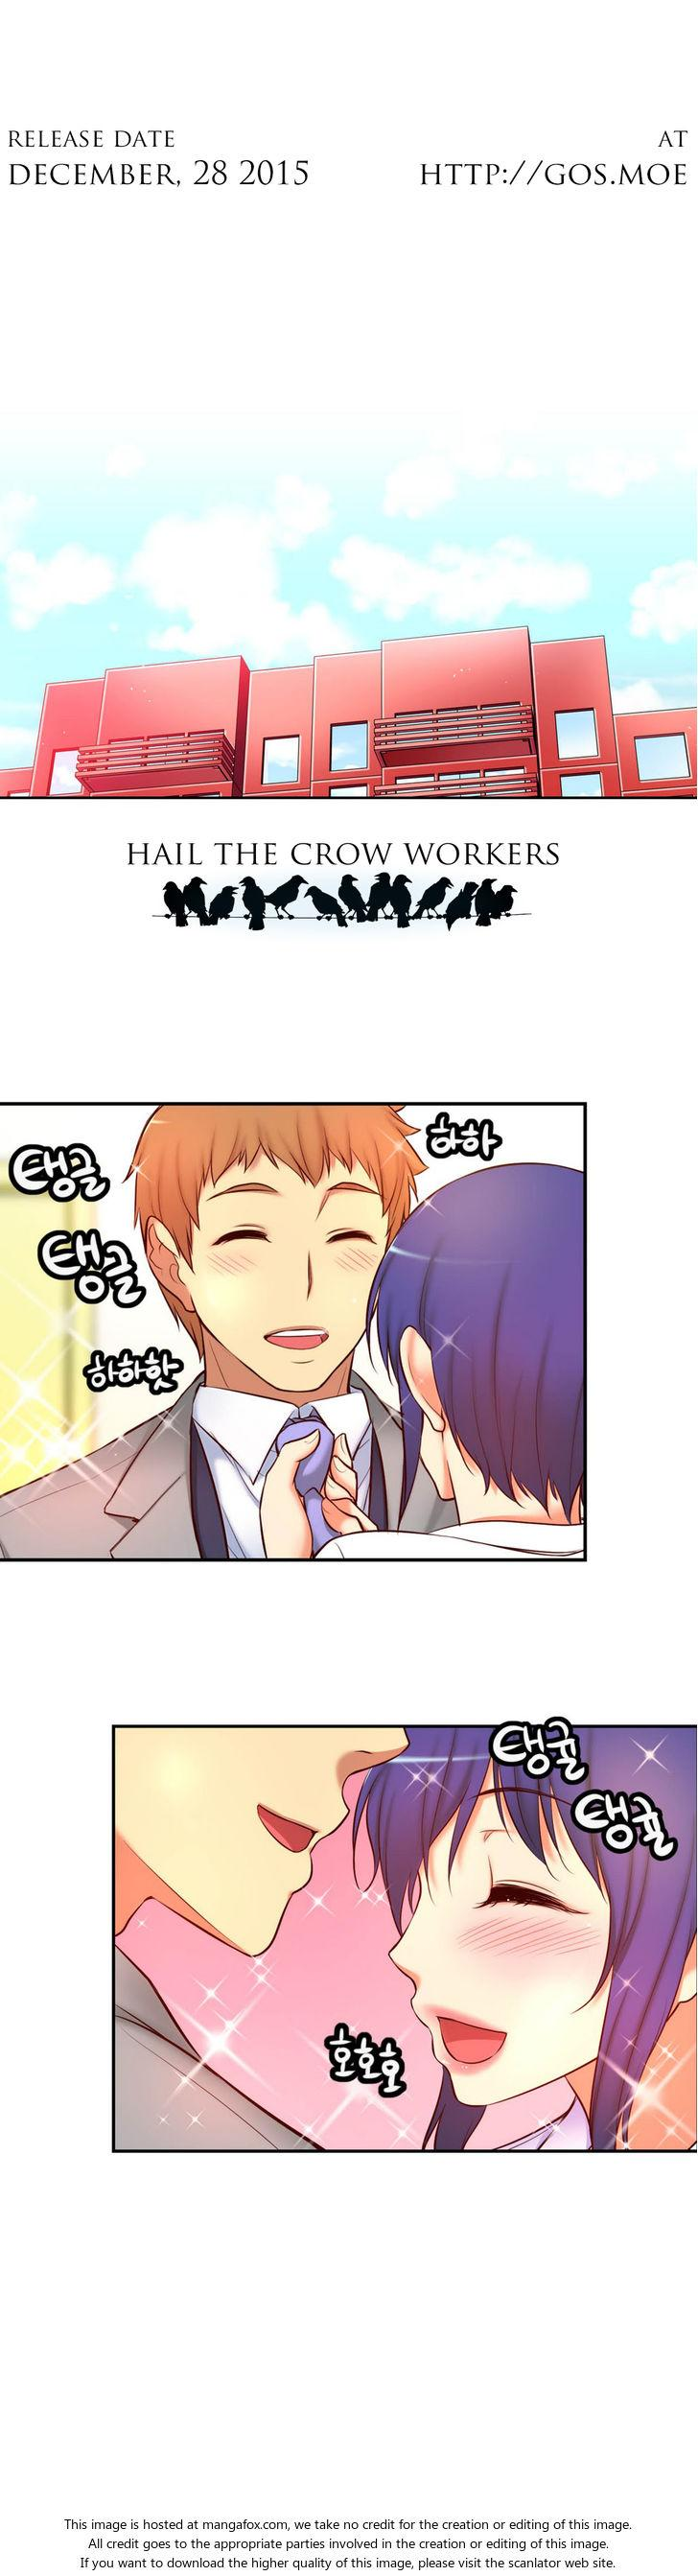 [Donggul Gom] She is Young (English) Part 1/2 1545